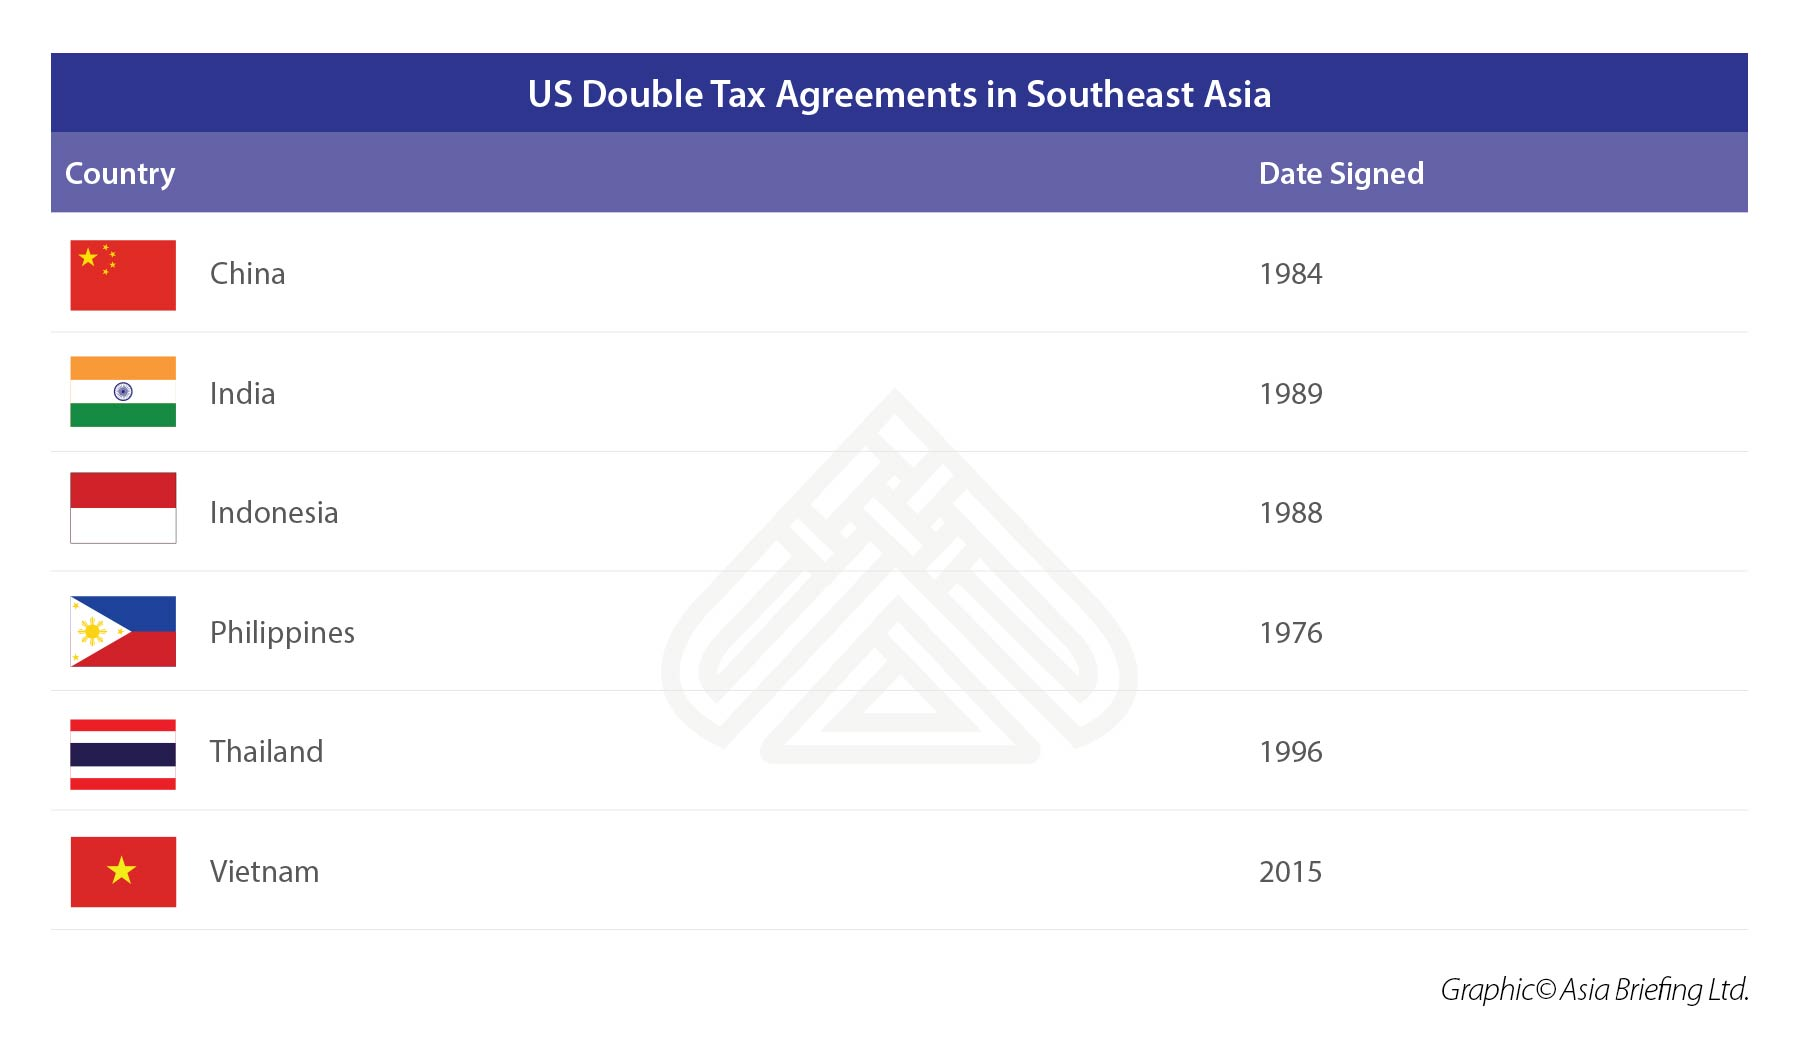 US Double Tax Agreements in Southeast Asia